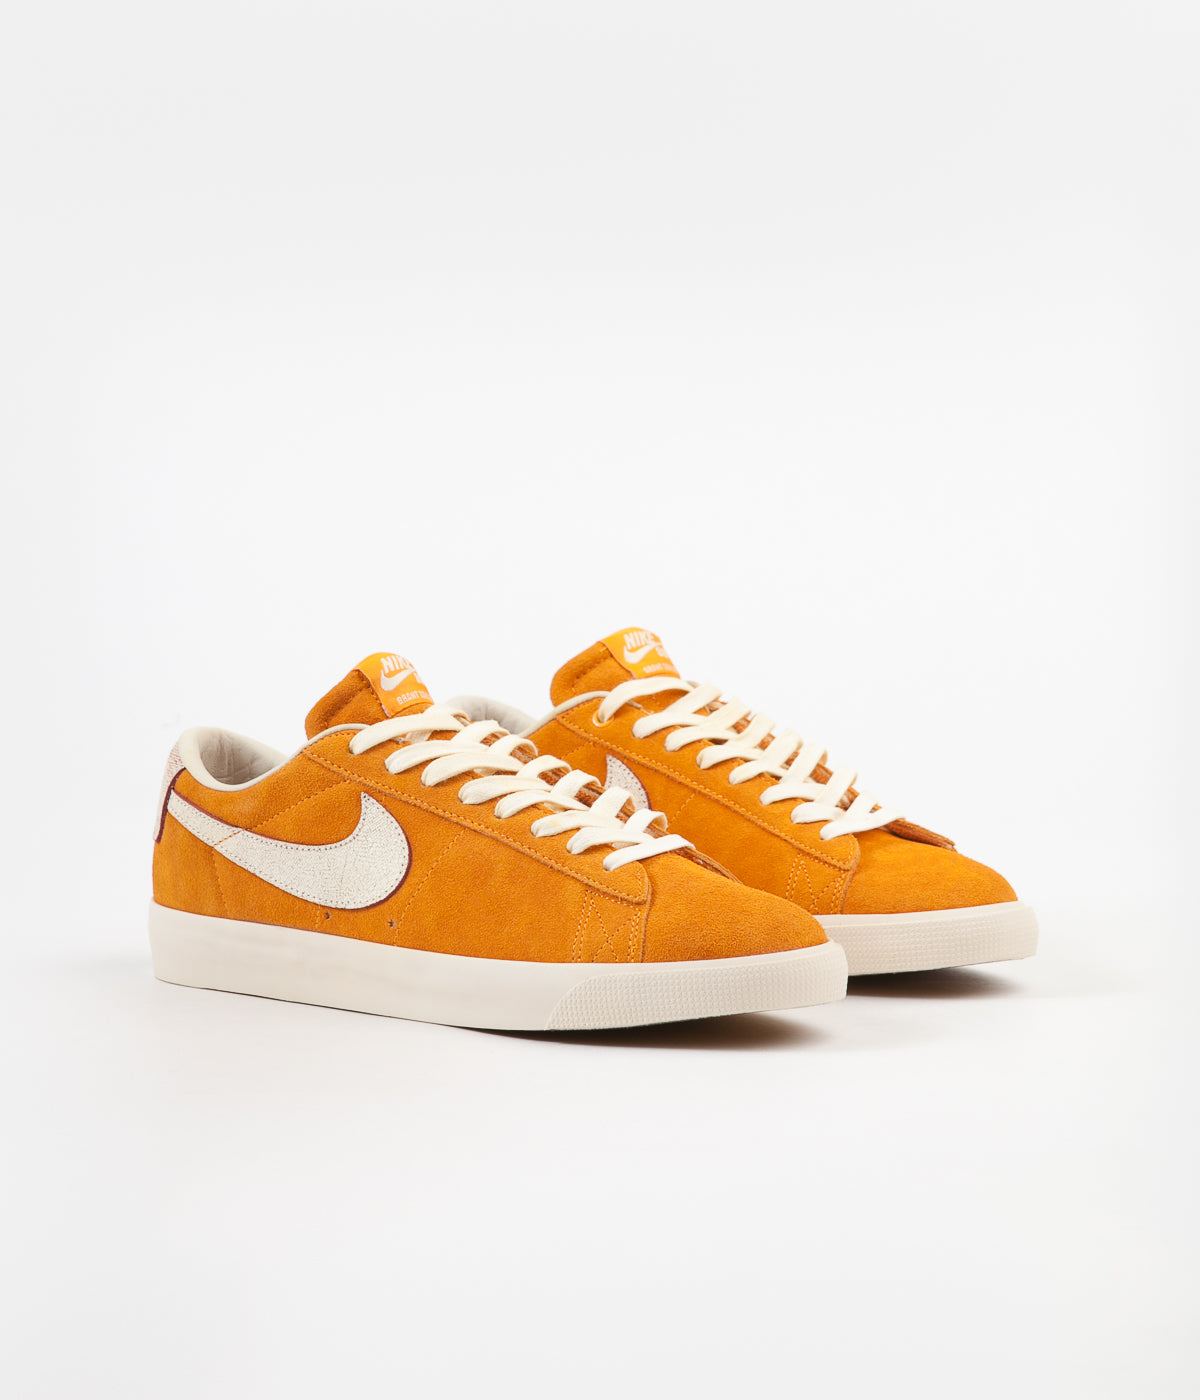 530d5a814ad ... Nike SB  Bruised Peach  Blazer Low GT Shoes - Circuit Orange   Natural  ...